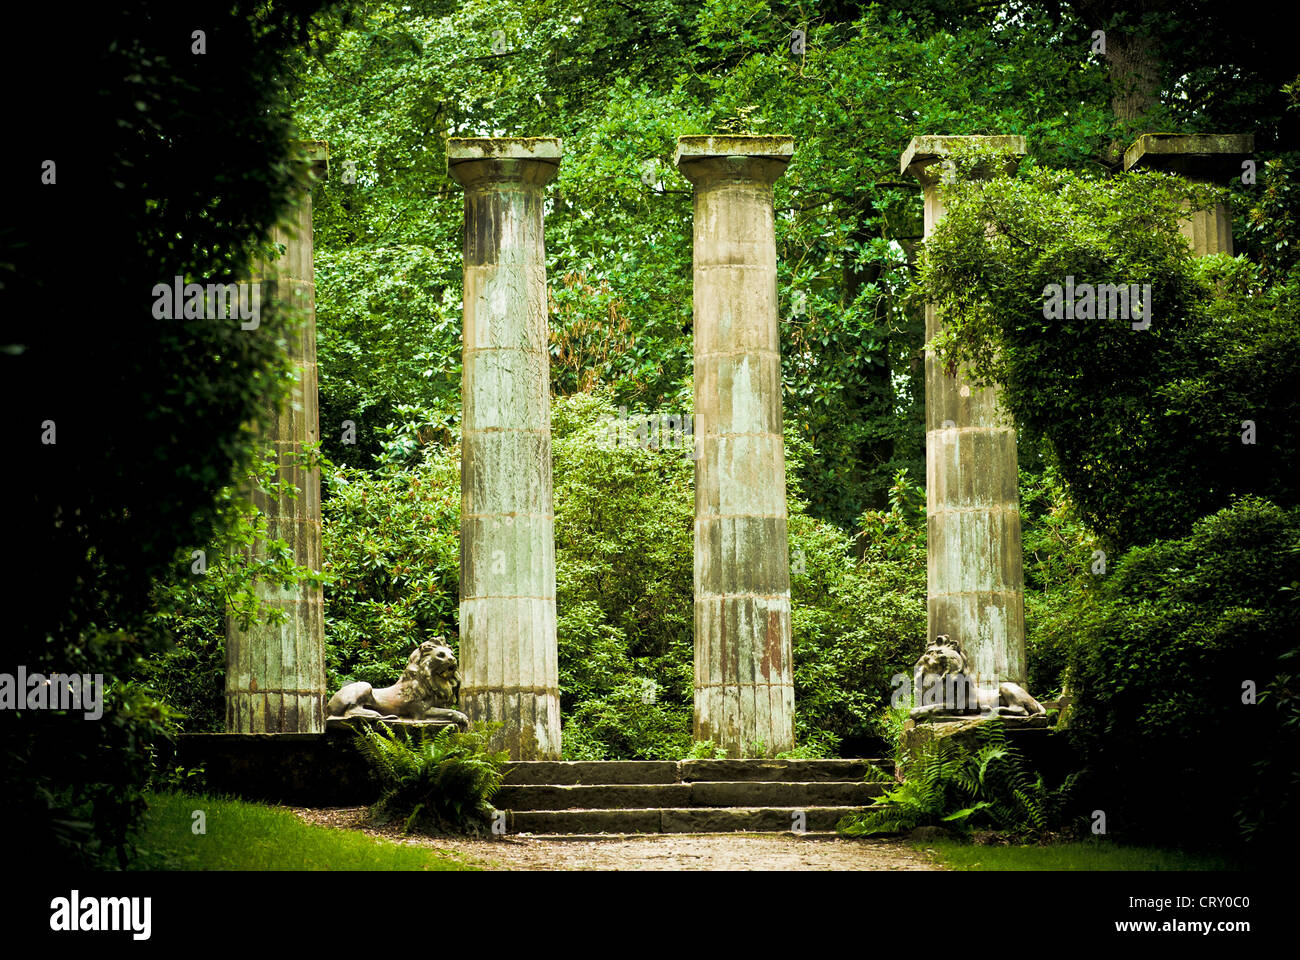 Stone Columns Harlow Carr Gardens Harrogate Stock Photo Royalty